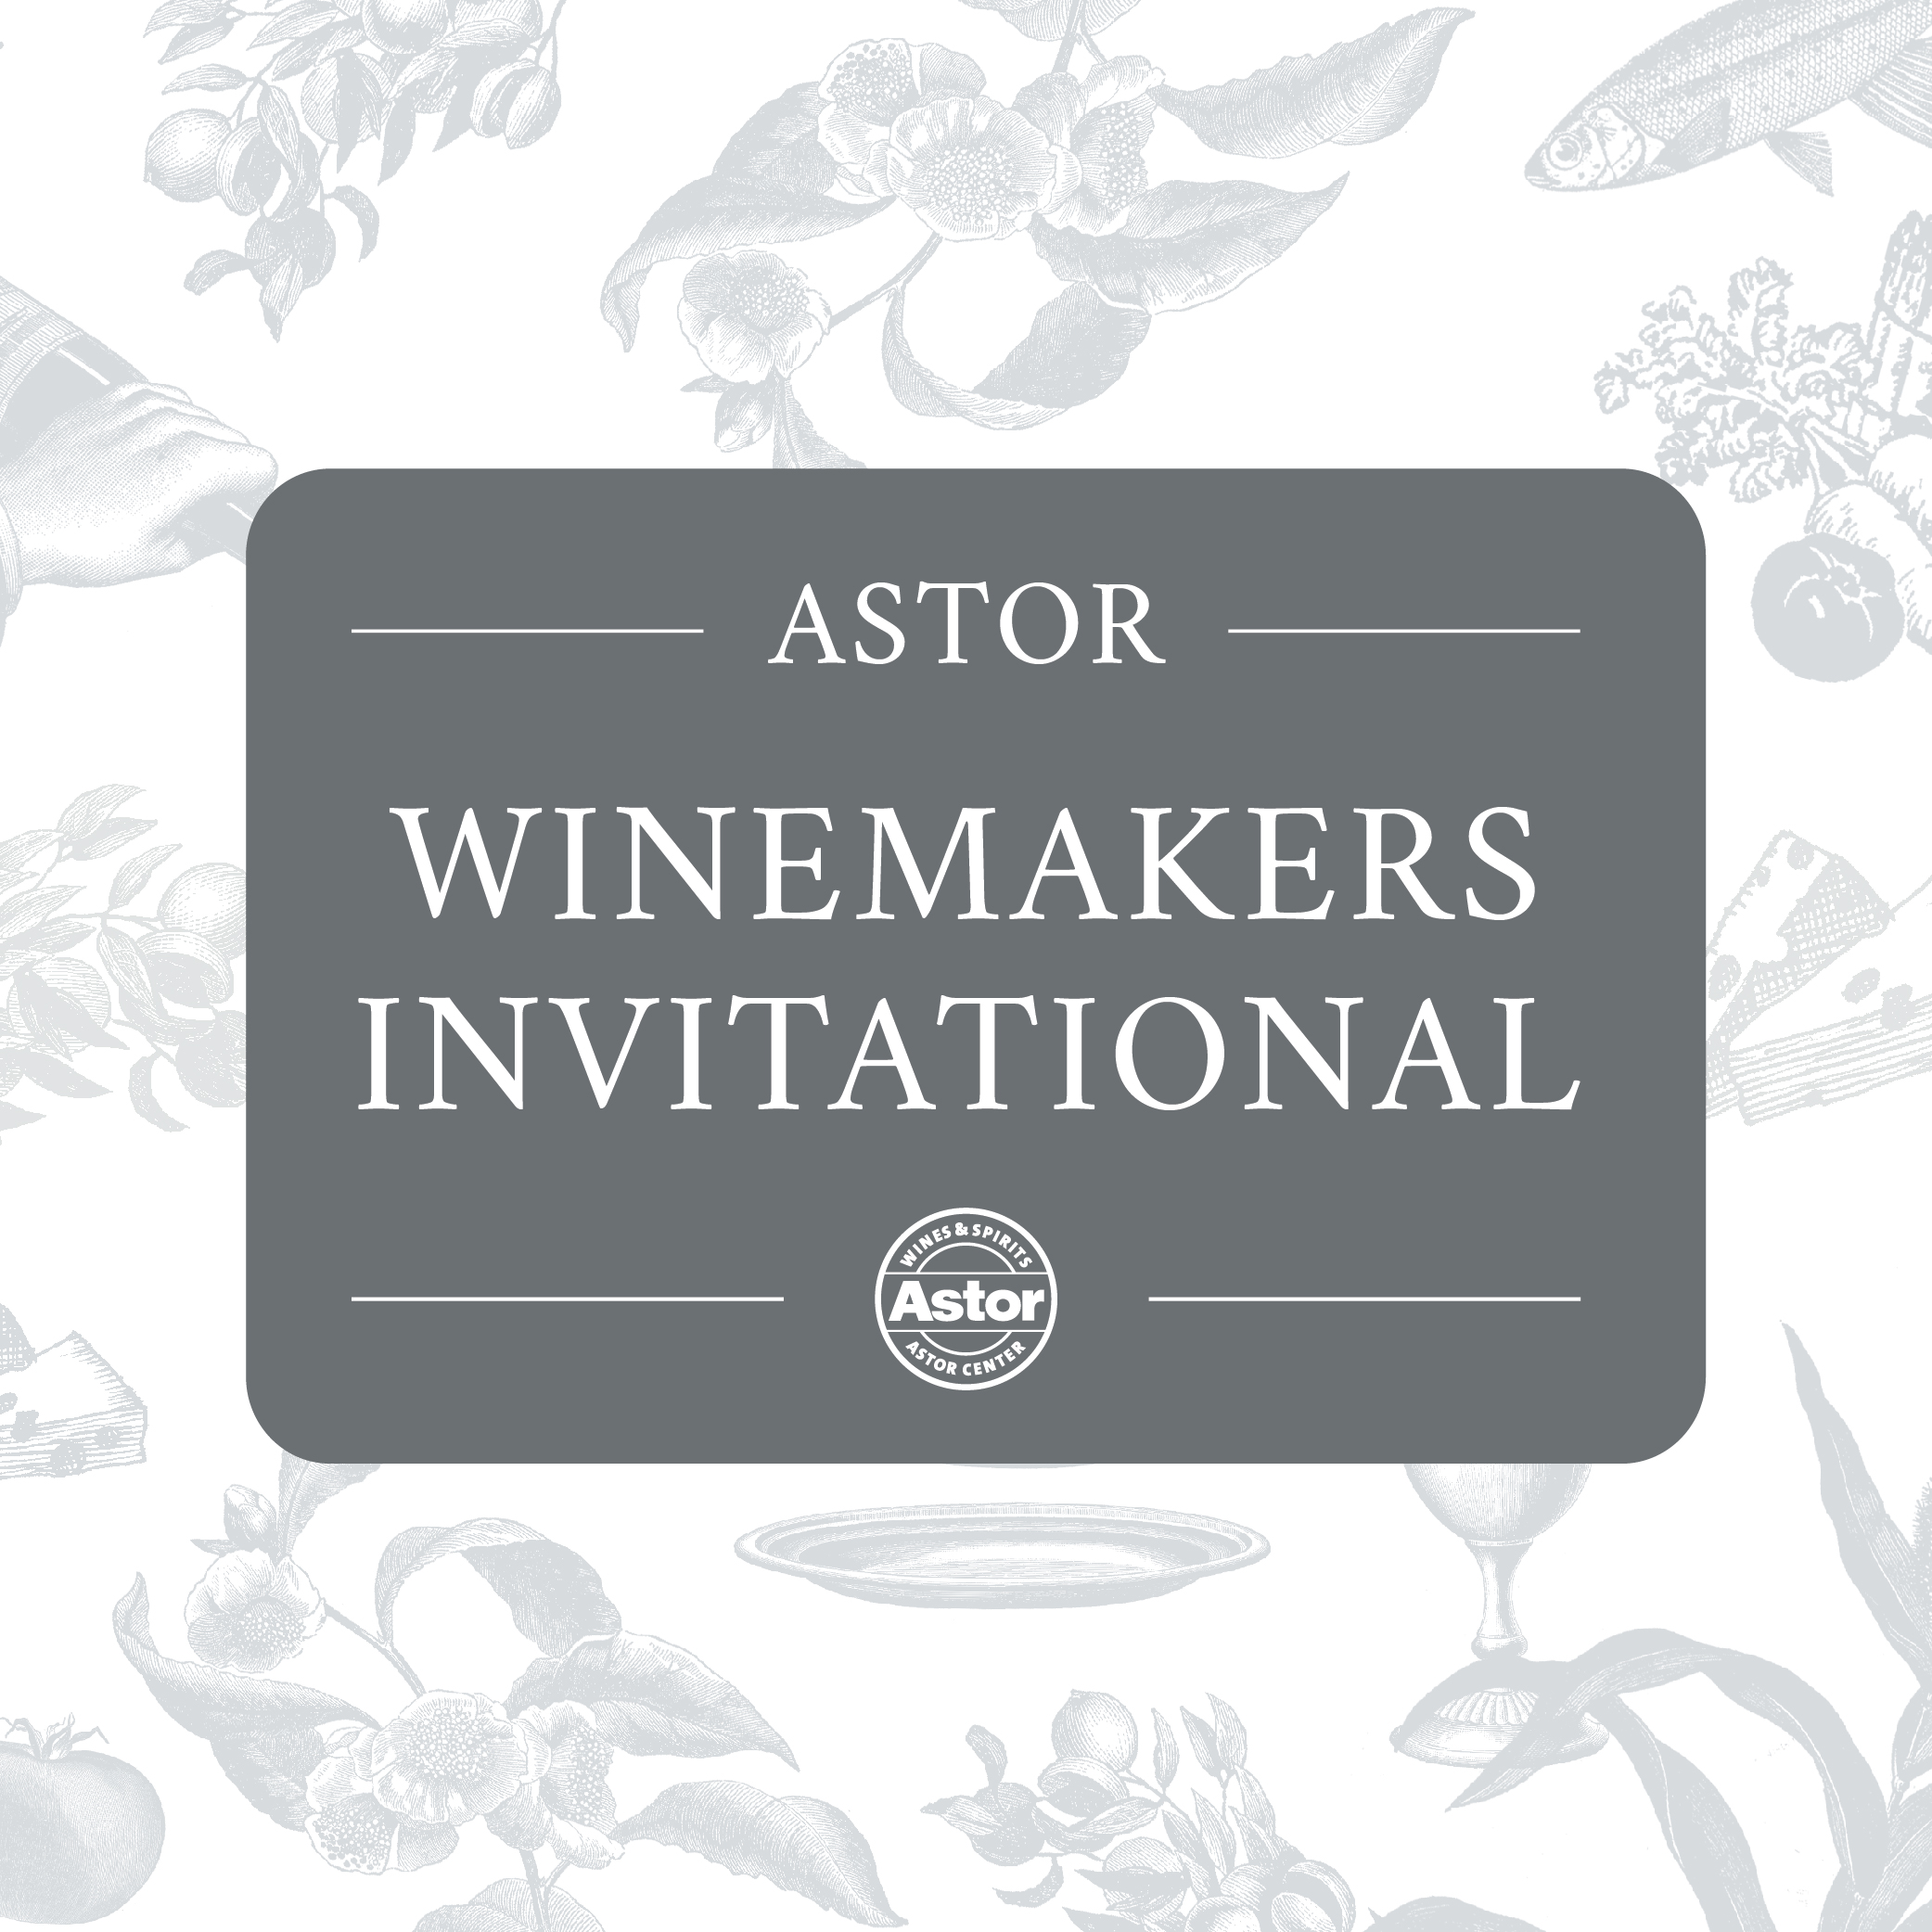 2015-04-18-Astor-Winemakers-Invitational-social media-13-13.jpg